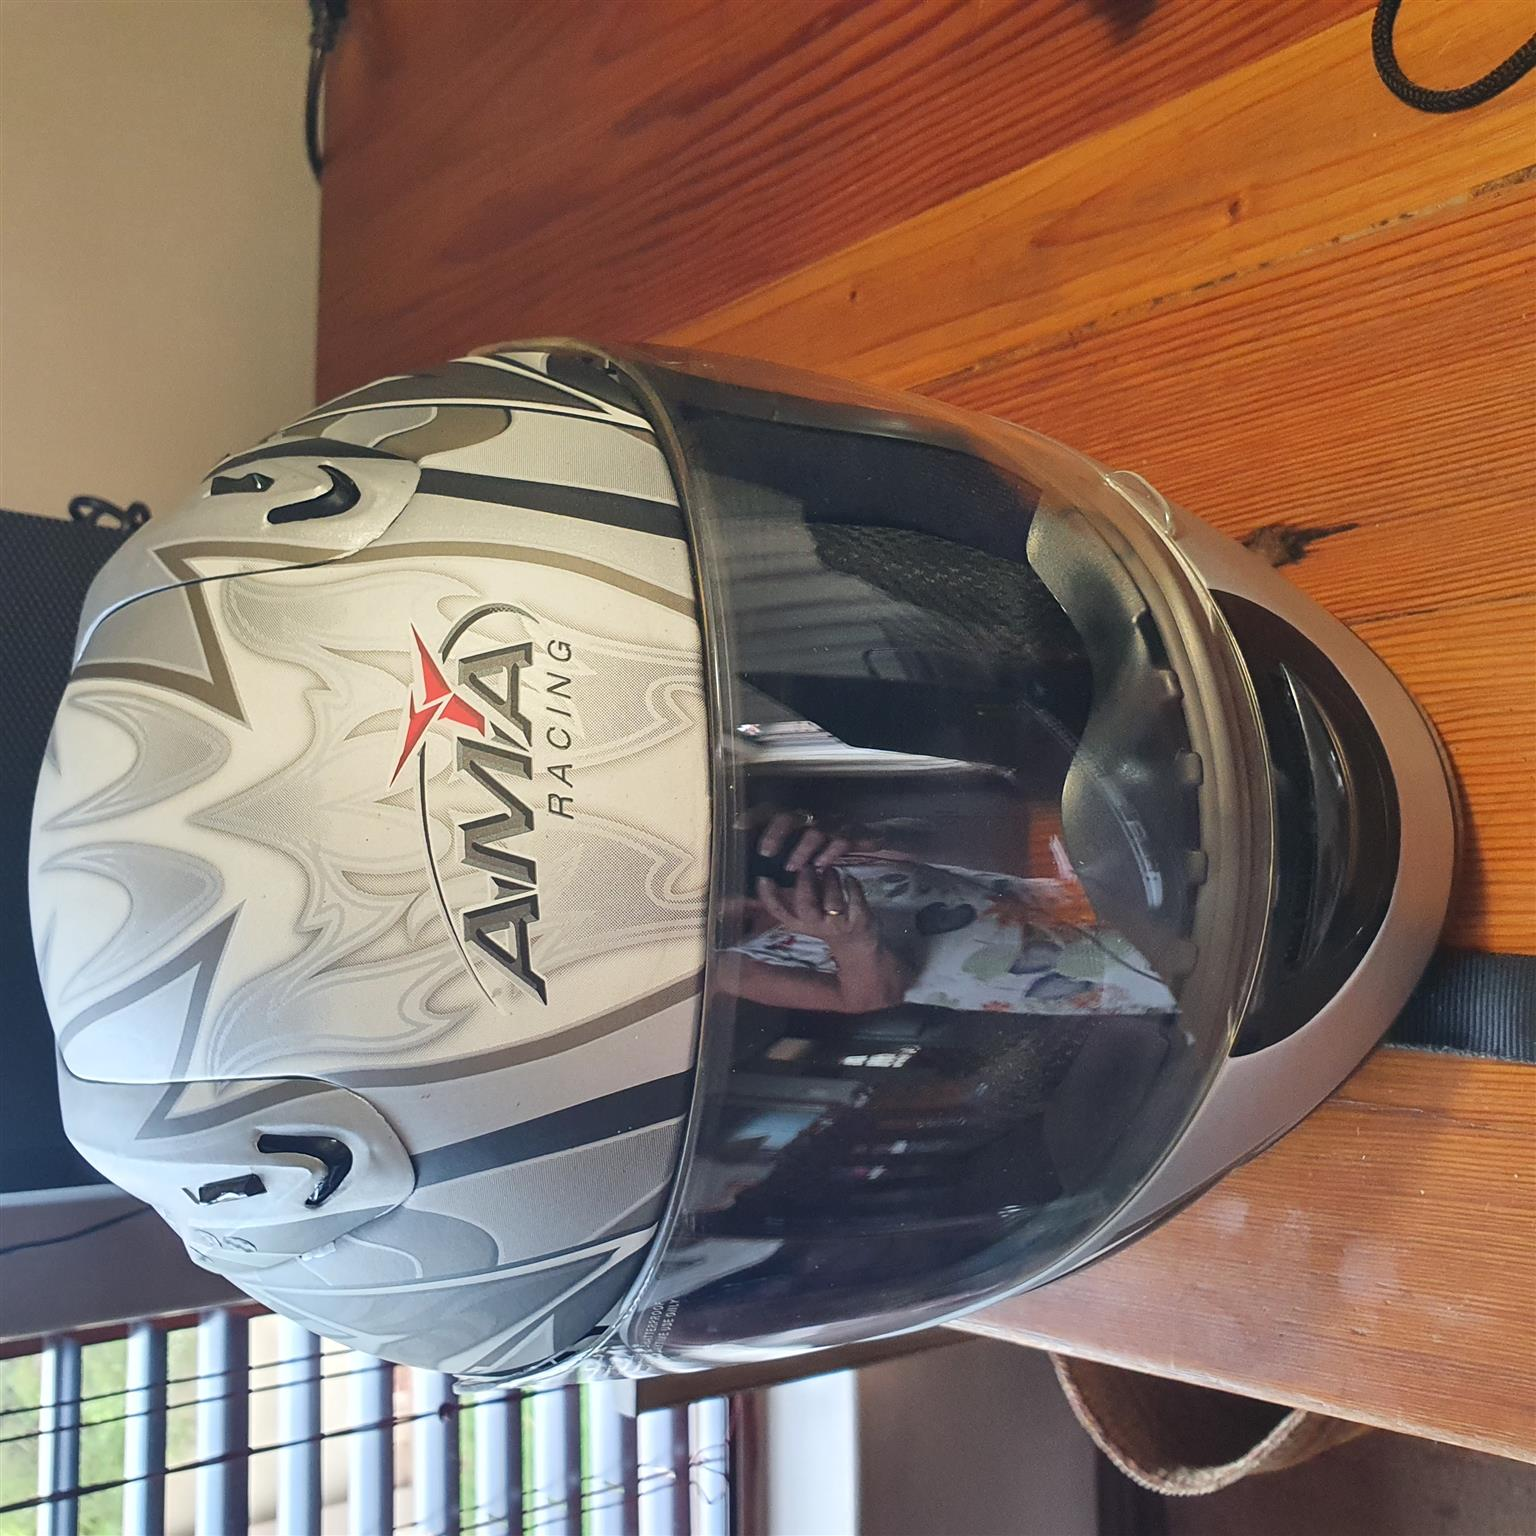 AMA full face motorcycle helmet.